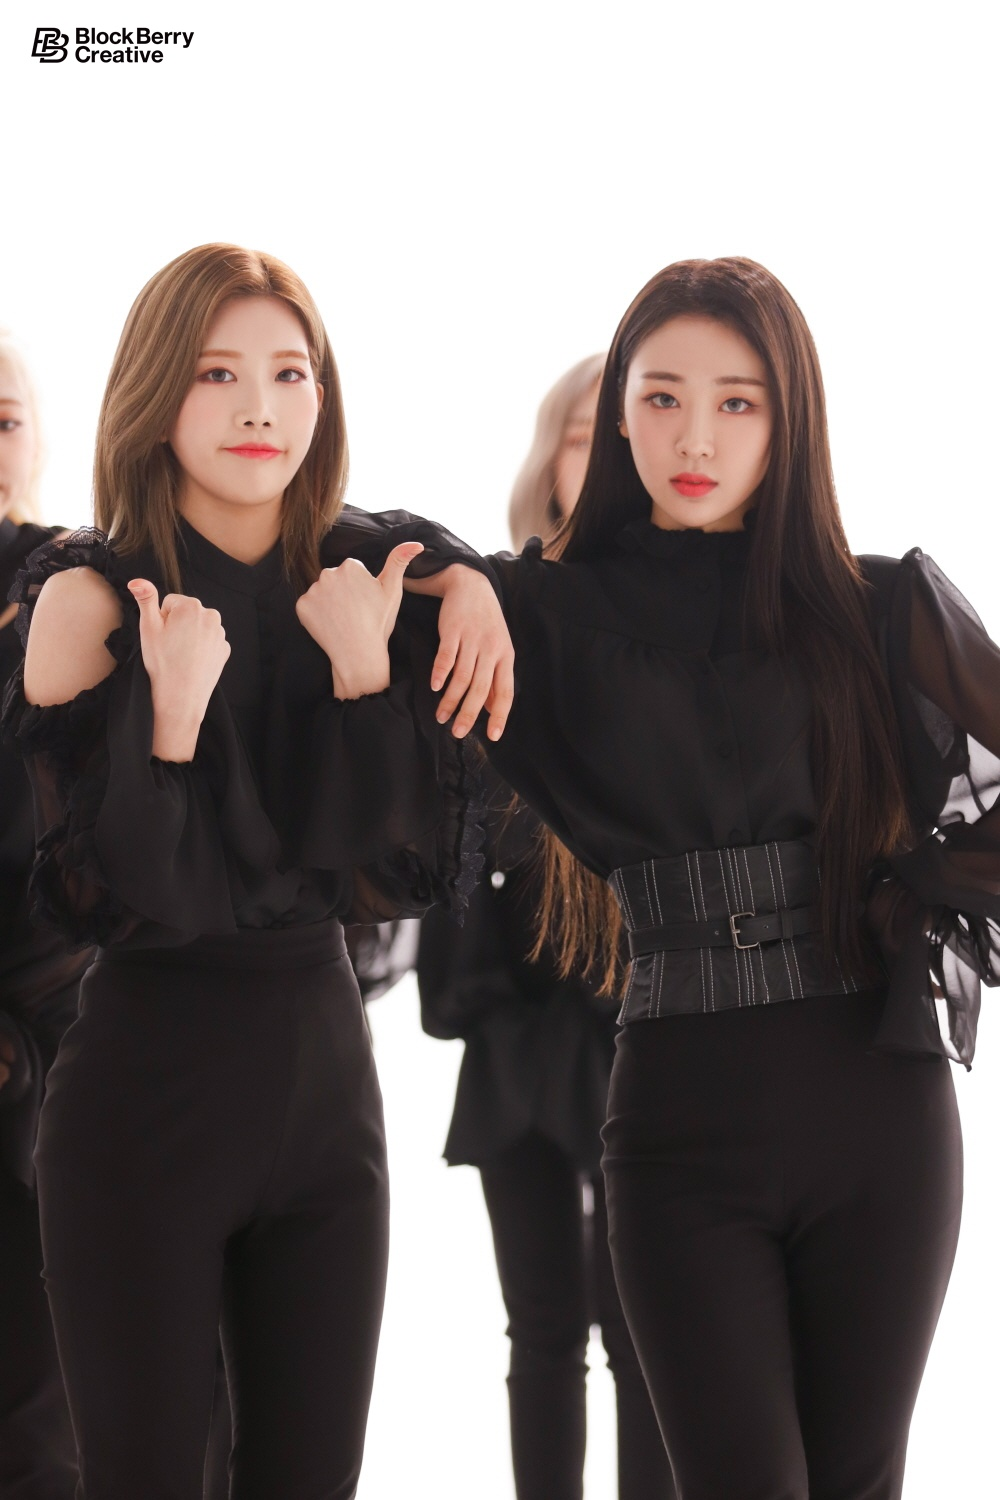 LOONA Speaks On The Meaning Behind Their Single